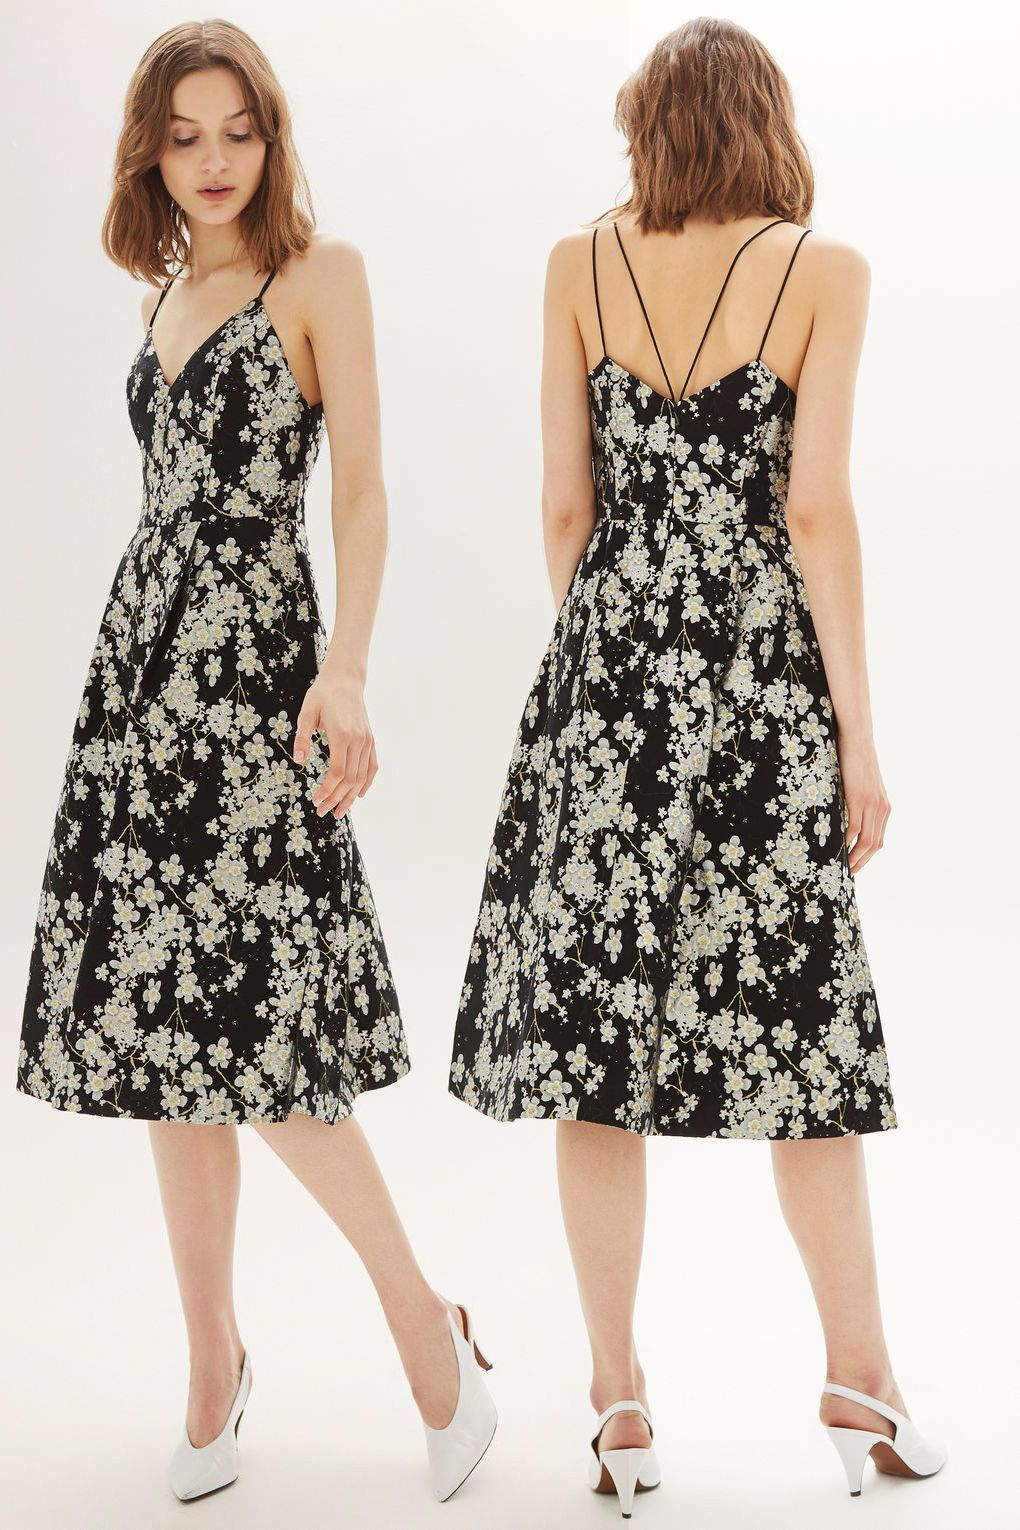 Pretty Formal Occasion Dress The Florals Make It Perfect For A